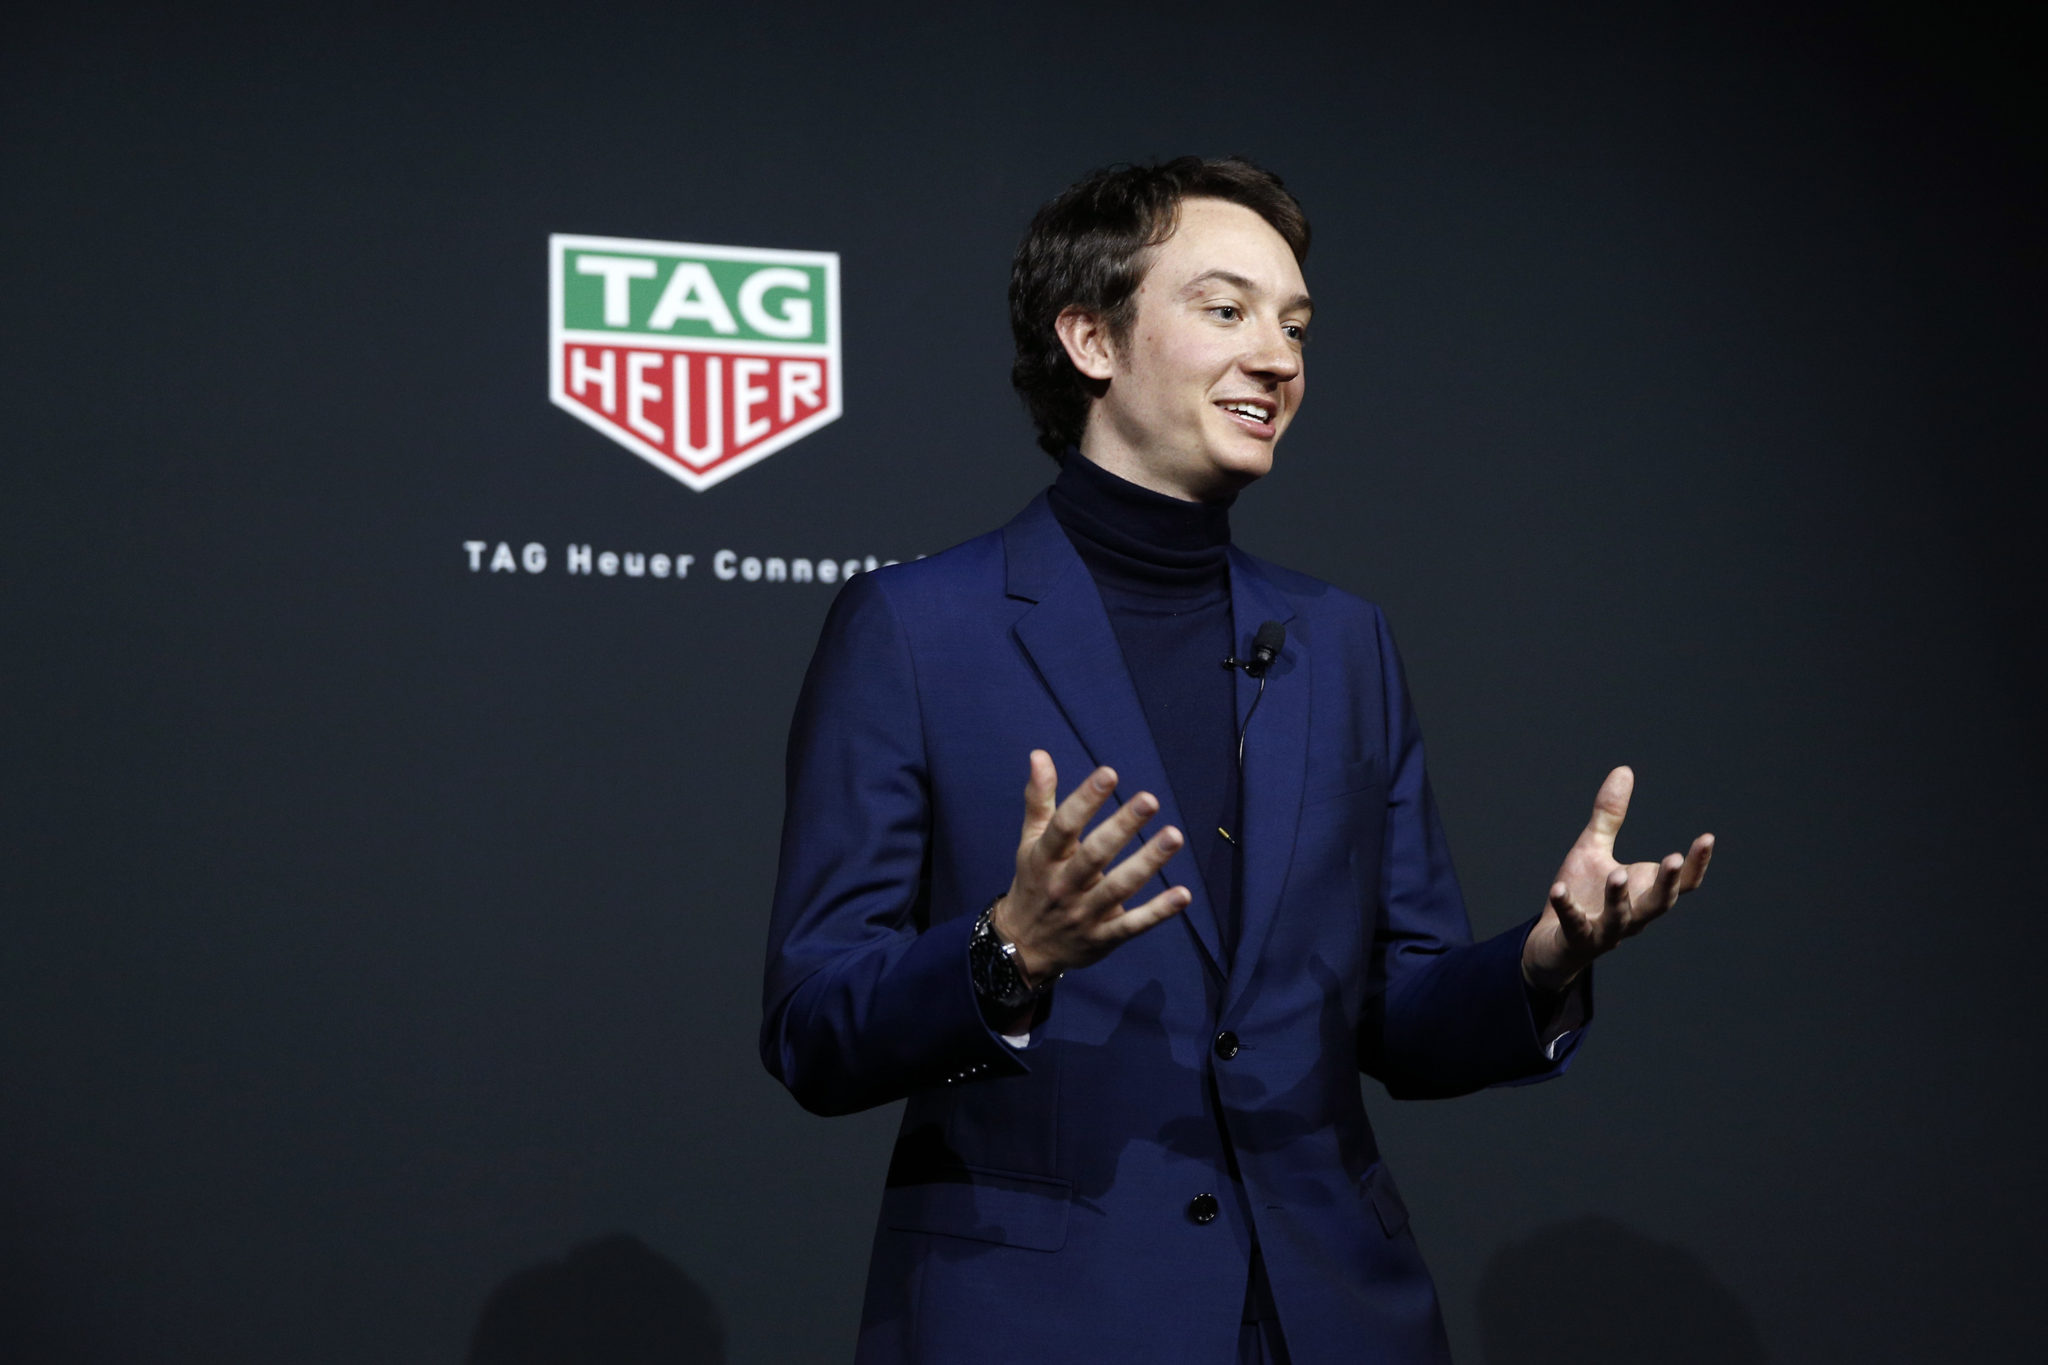 TAG Heuer Celebrates The Launch Of The New Connected Watch